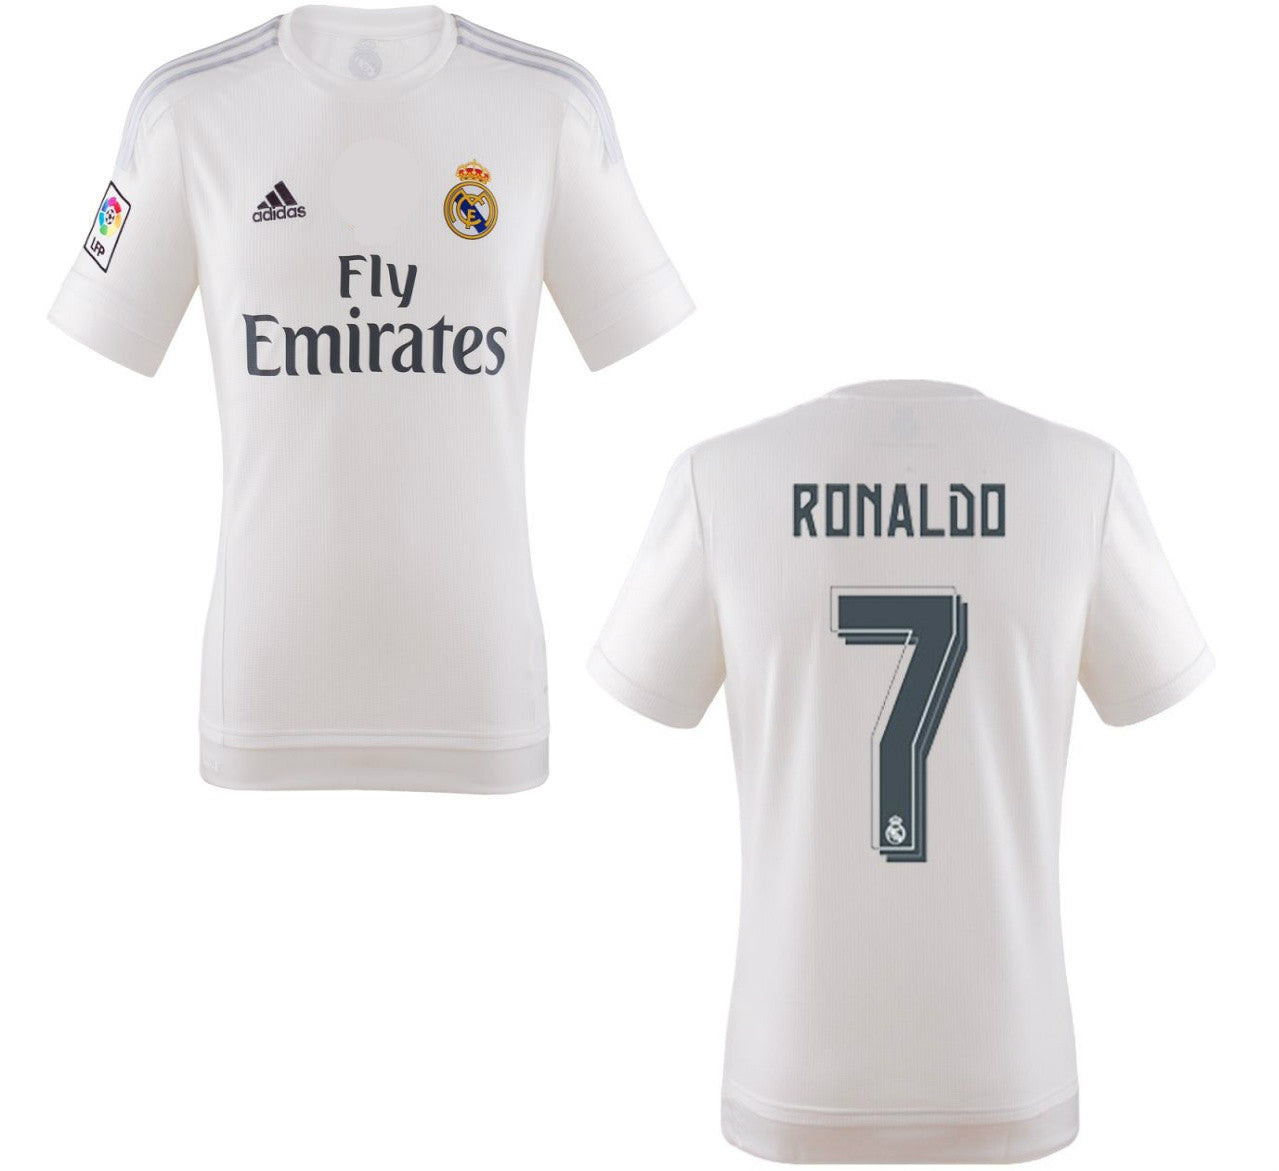 ronaldo jersey real madrid for boys kids and adults